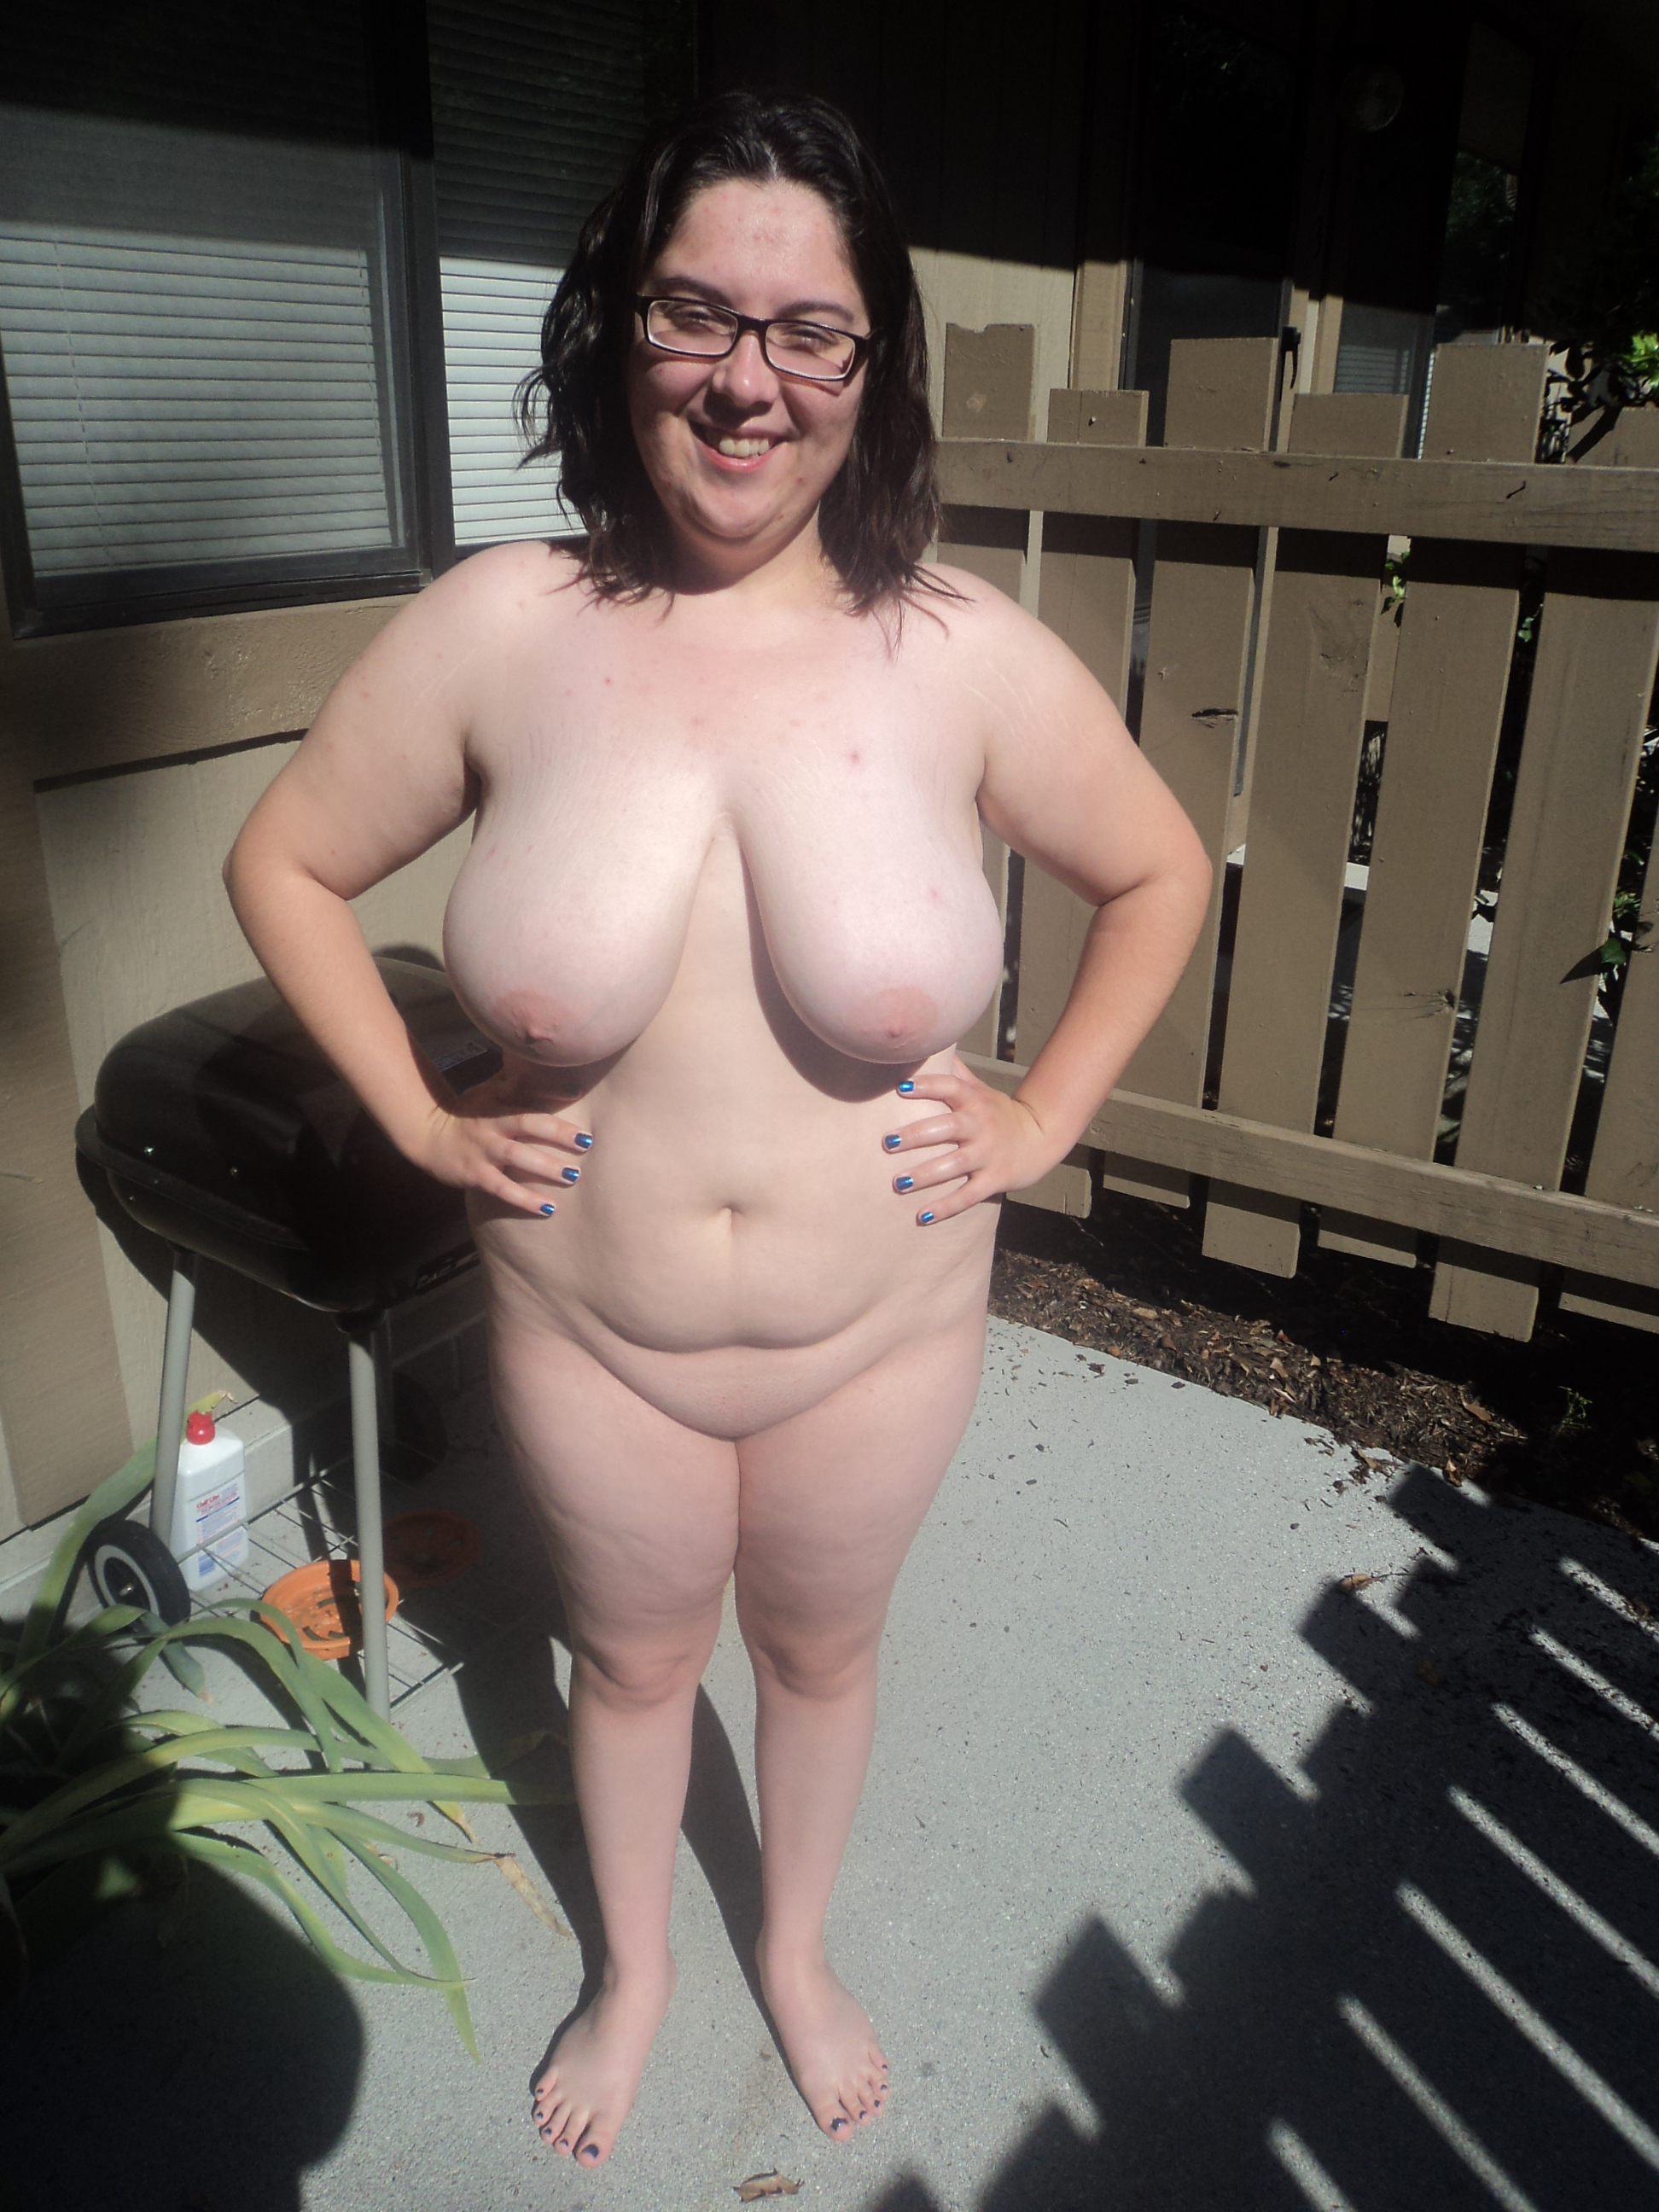 Photos public naked being in